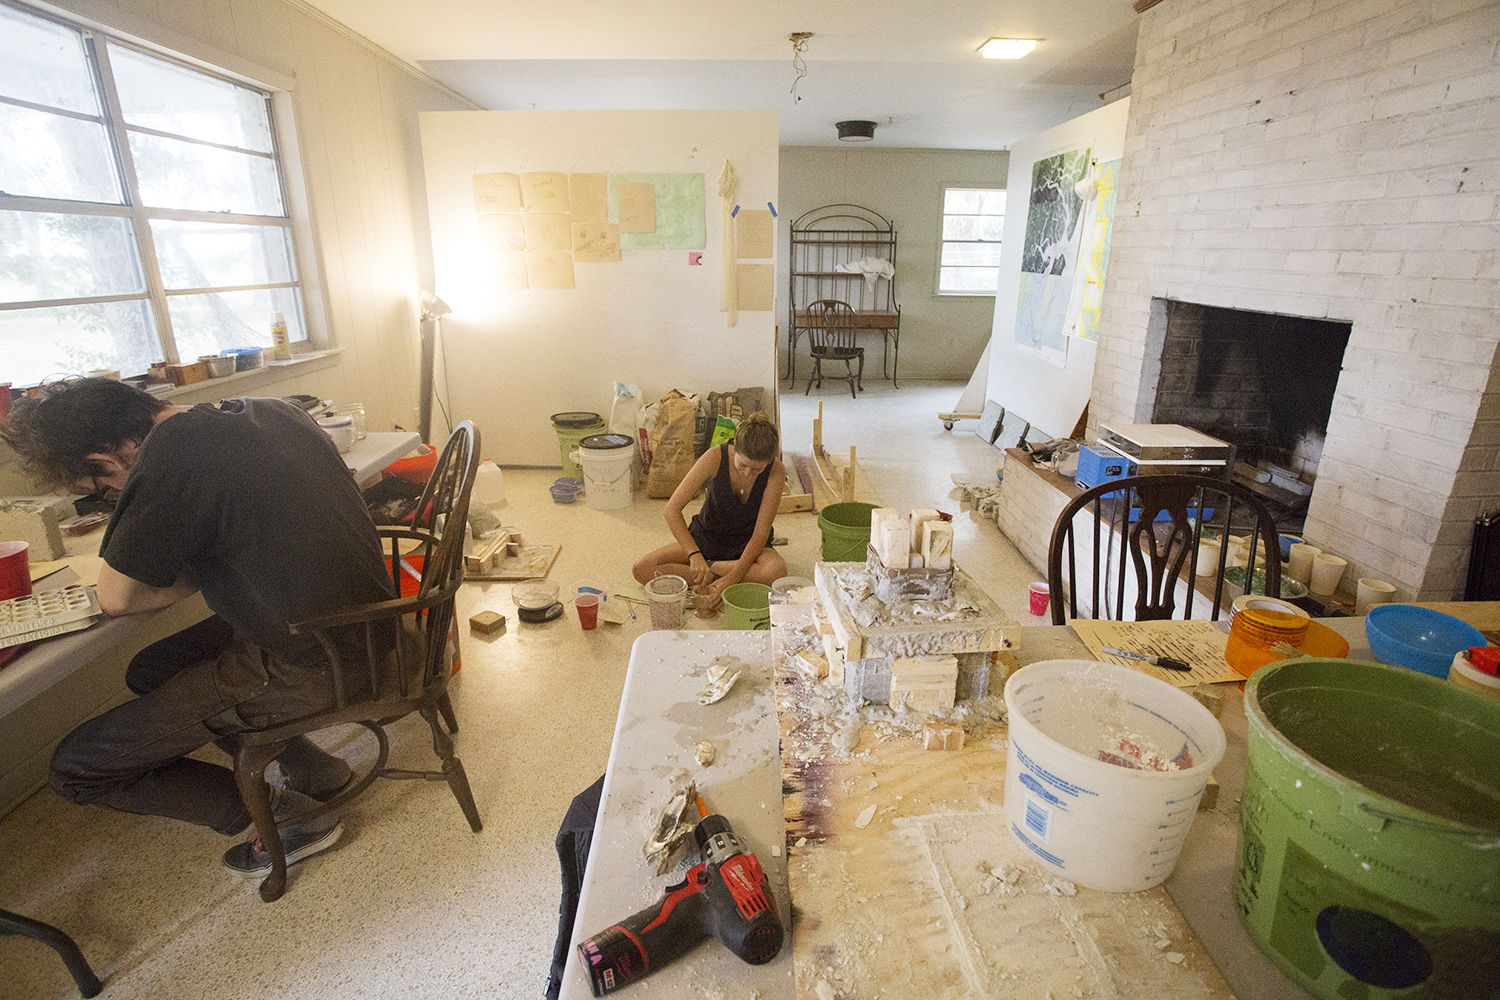 Sam Ihrig and Anna Riley, 2016 residents at work. Photo: Ansley Rivers.